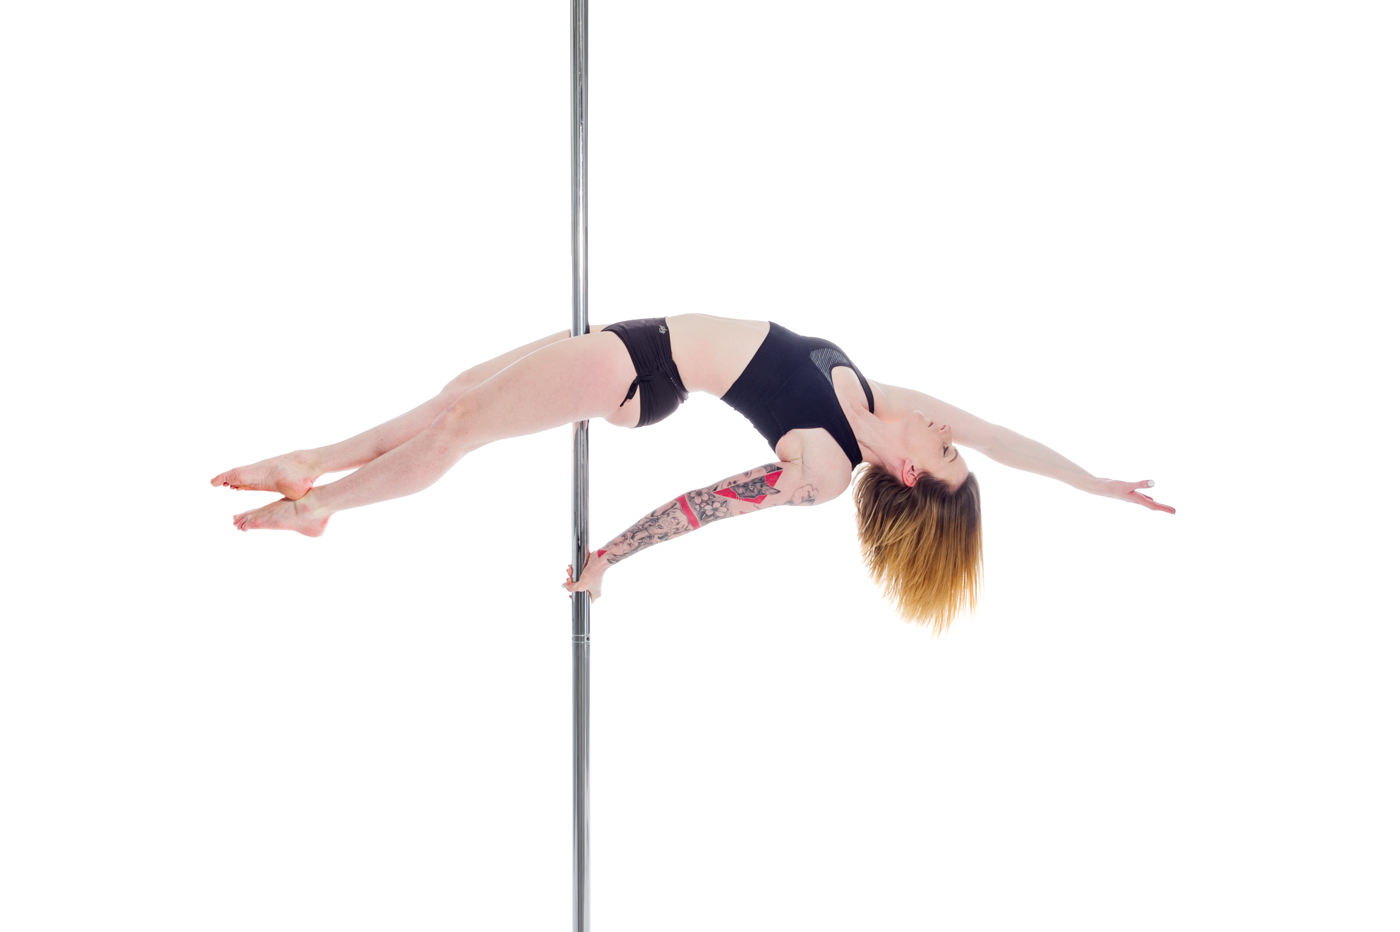 Aradia Fitness Calgary instructor Angela showing off a table move on pole